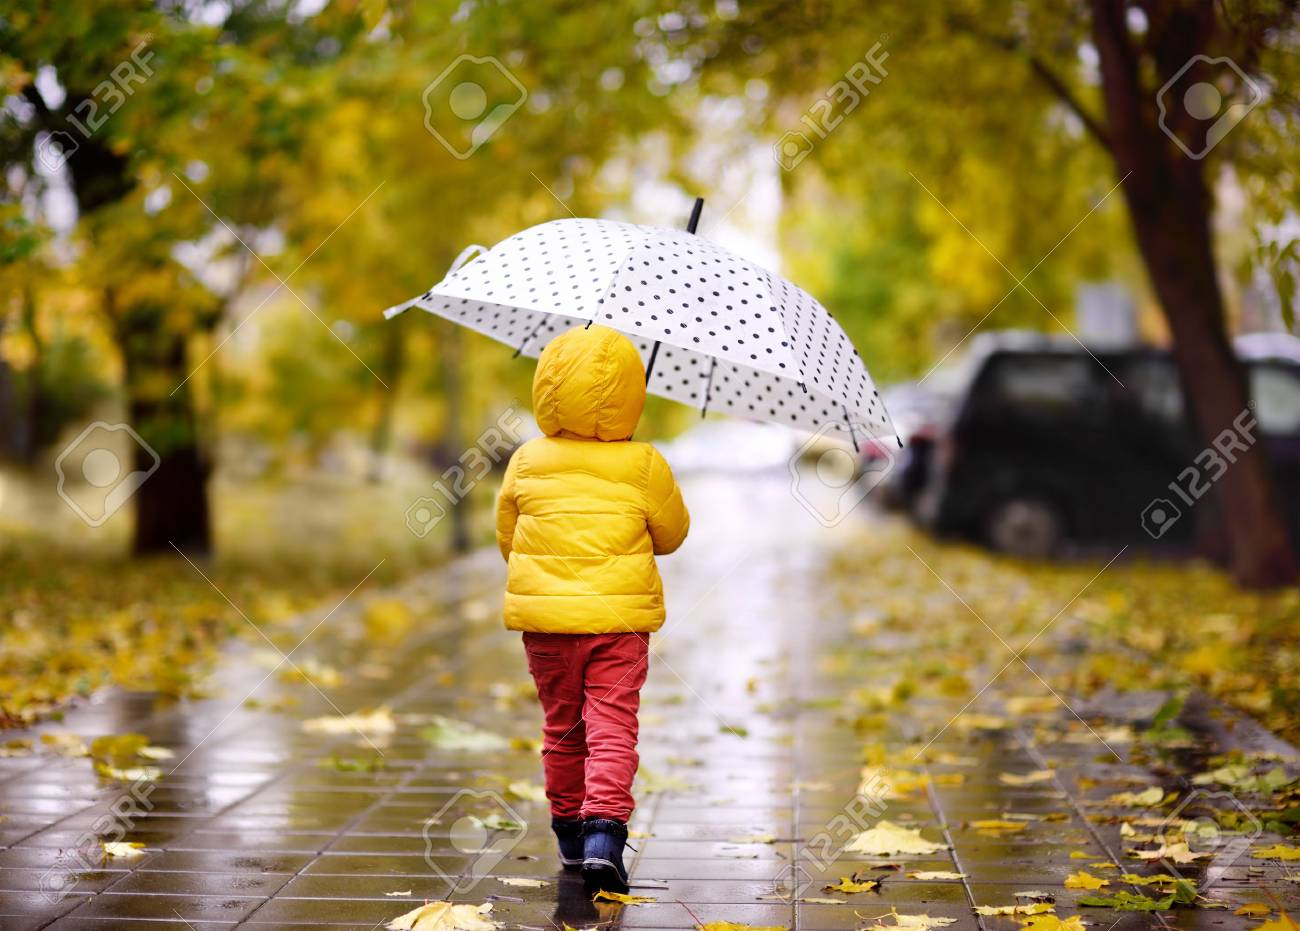 Little child walking in the city park at rainy autumn day. Toddler boy with umbrella for fall weather - 88132528